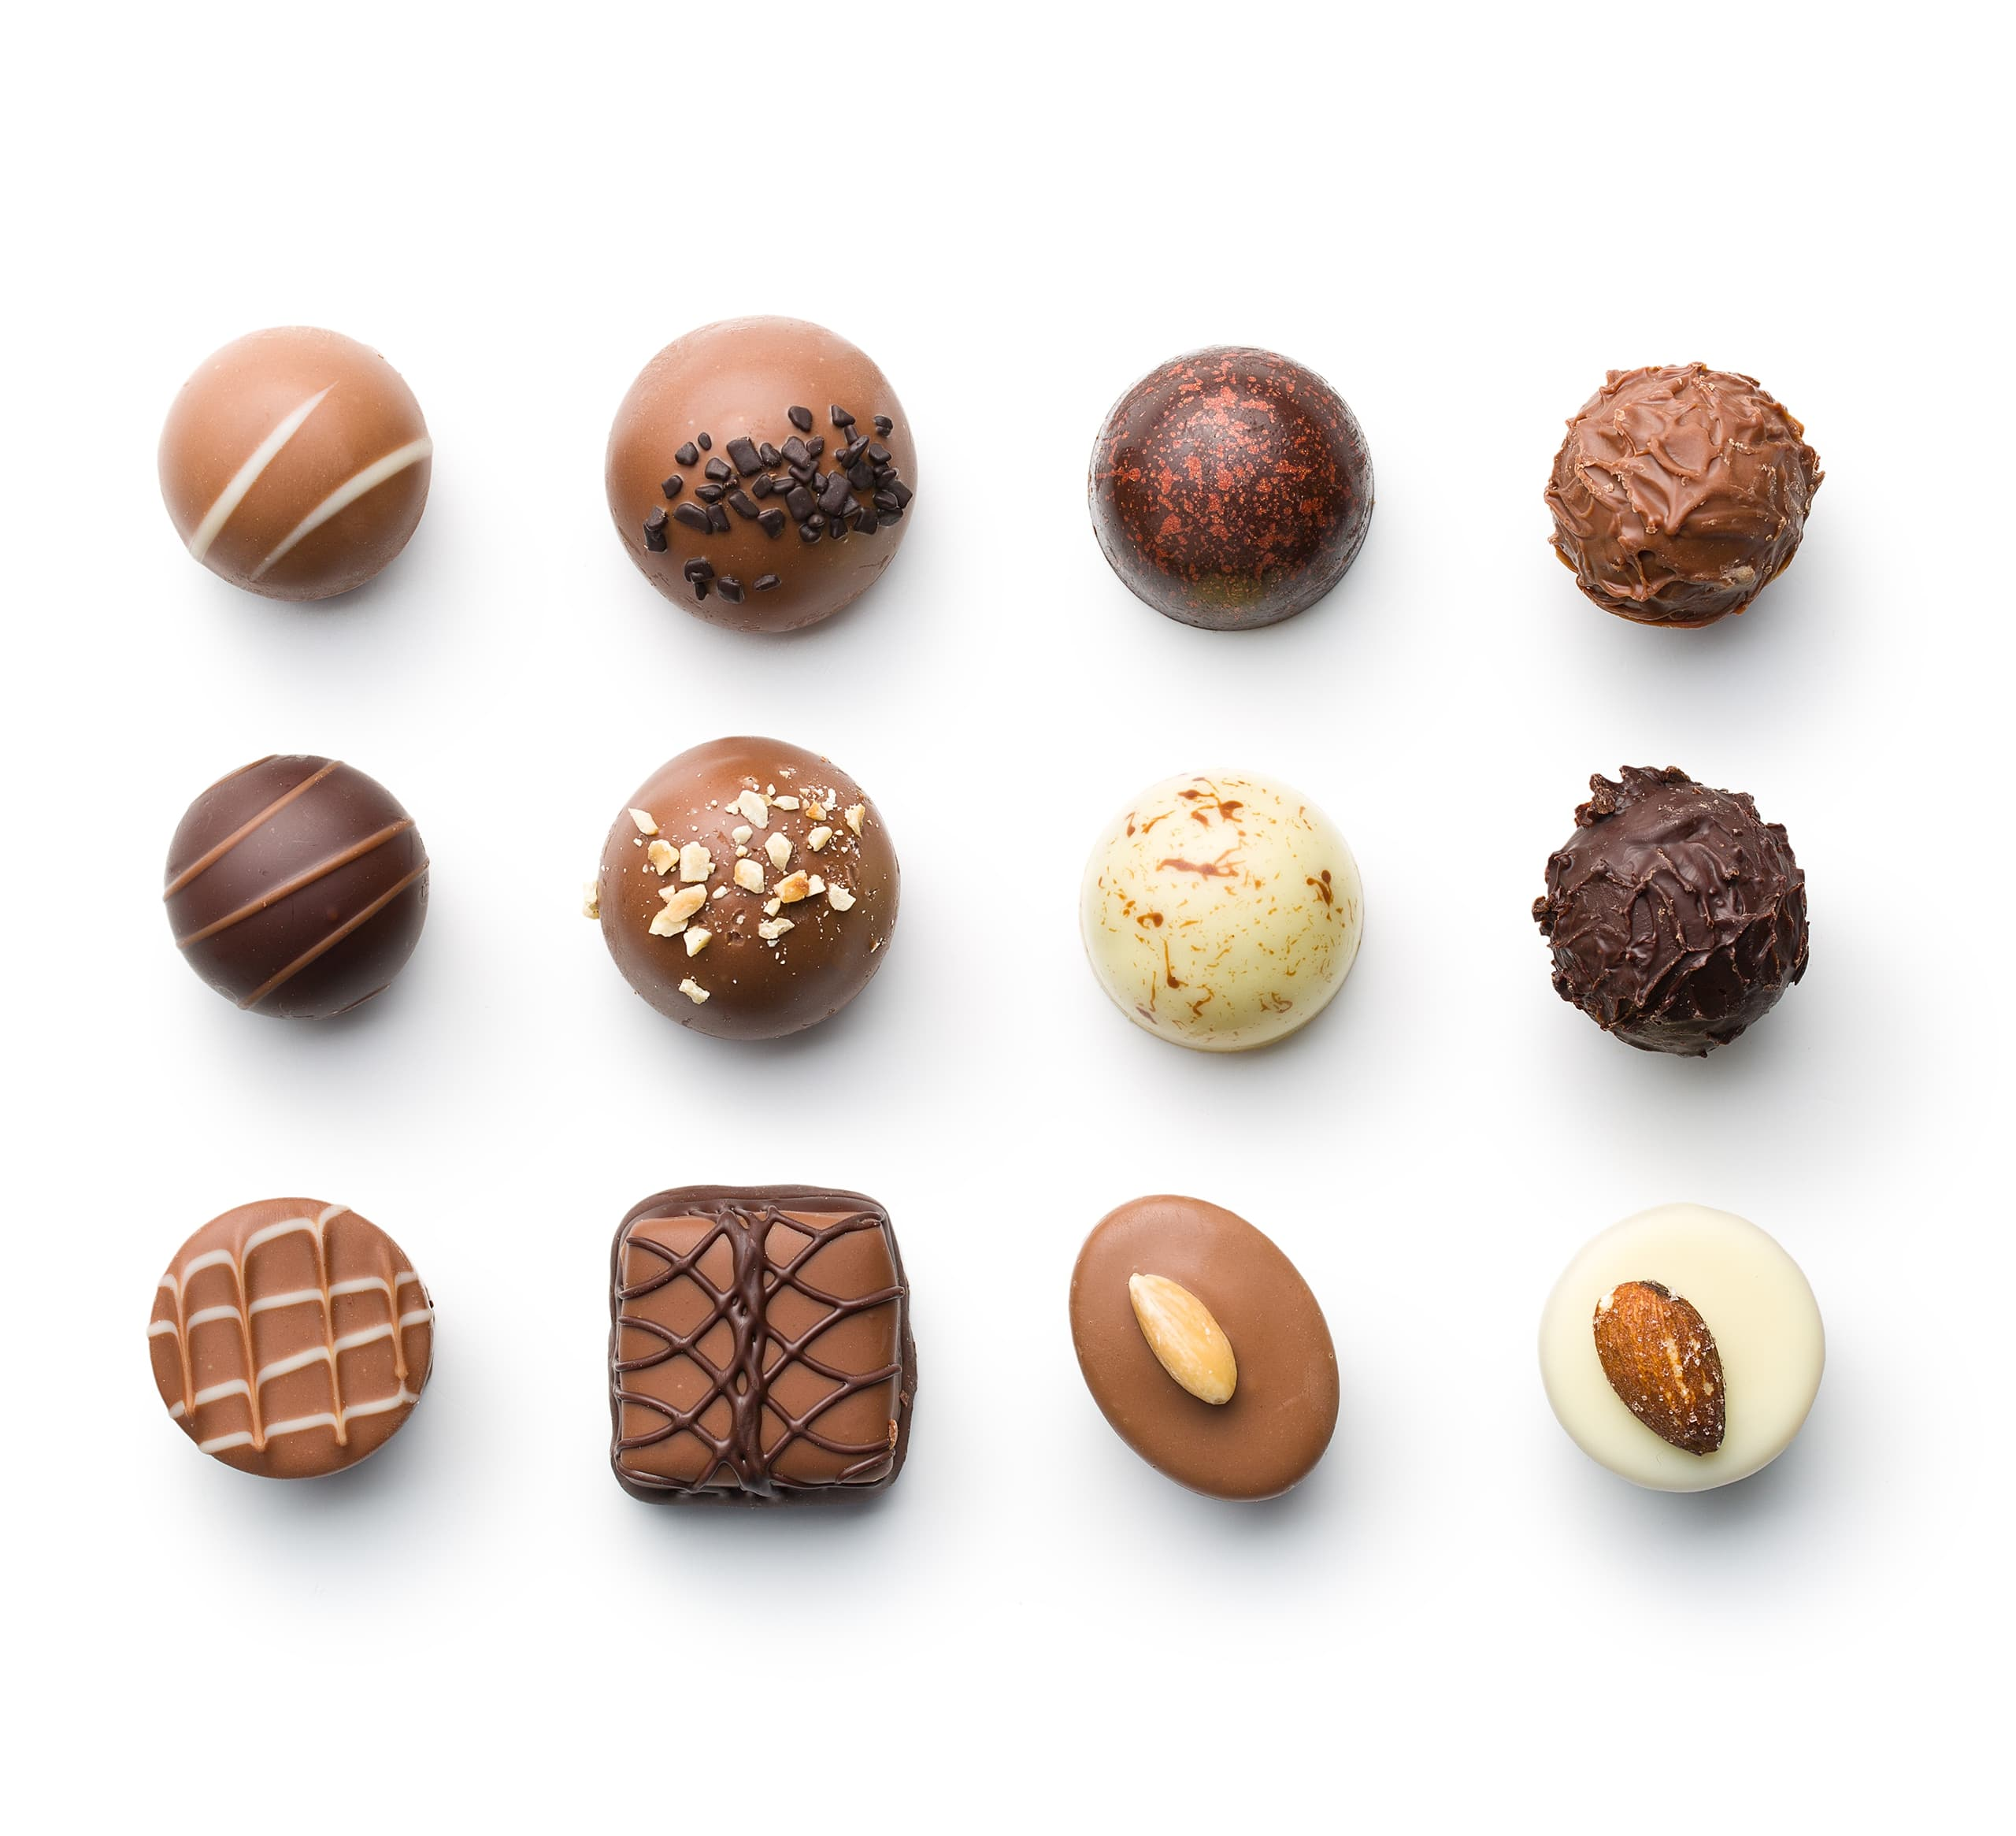 food quality problems sweets confectionery industry food inspection